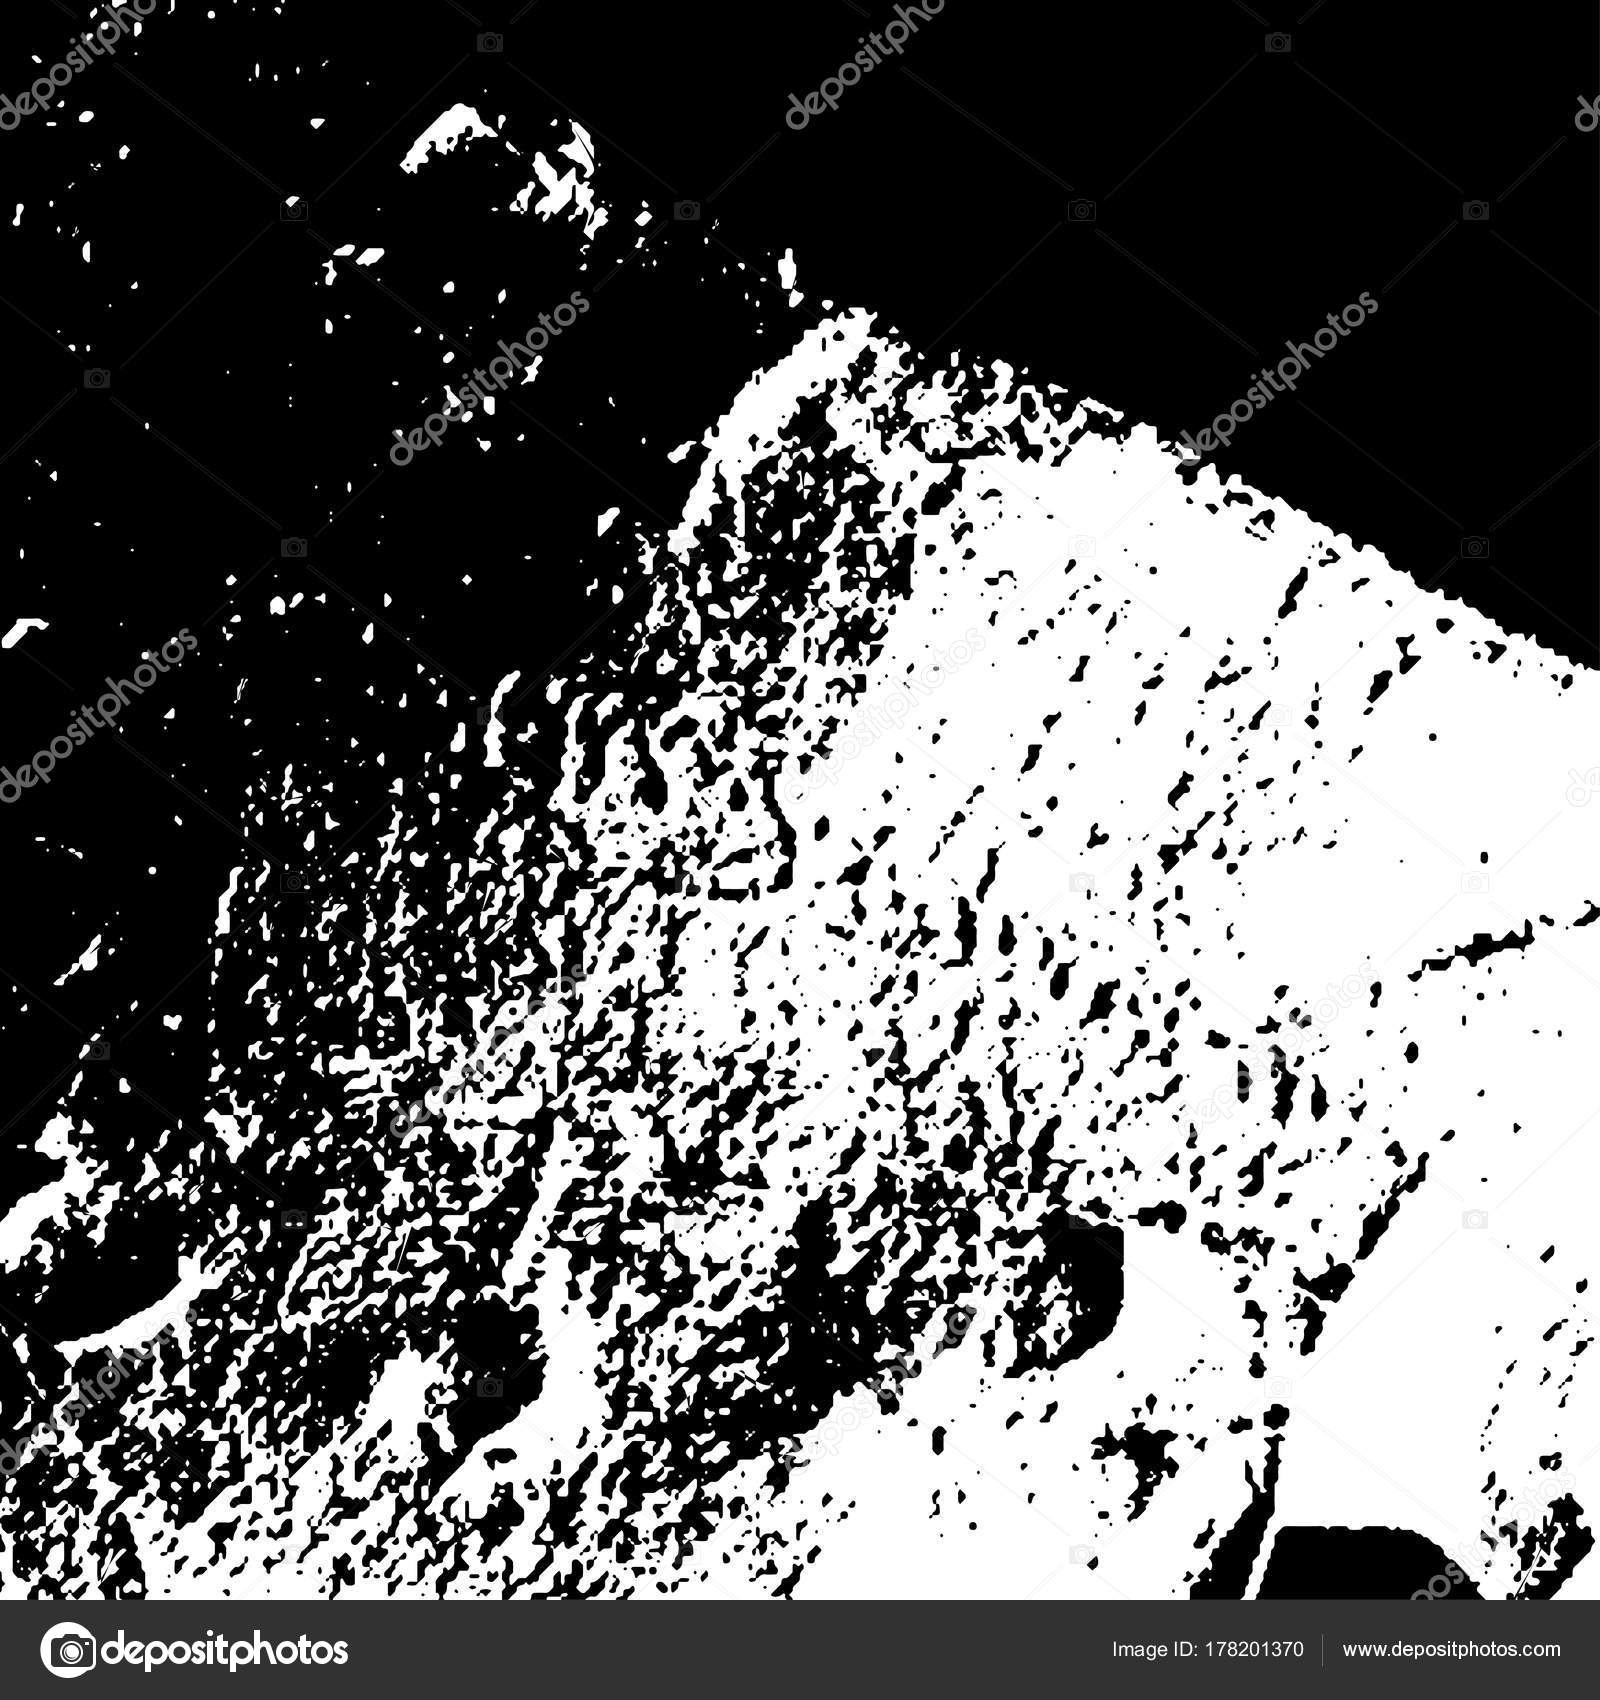 Grunge black textures on white background. Template for business ...